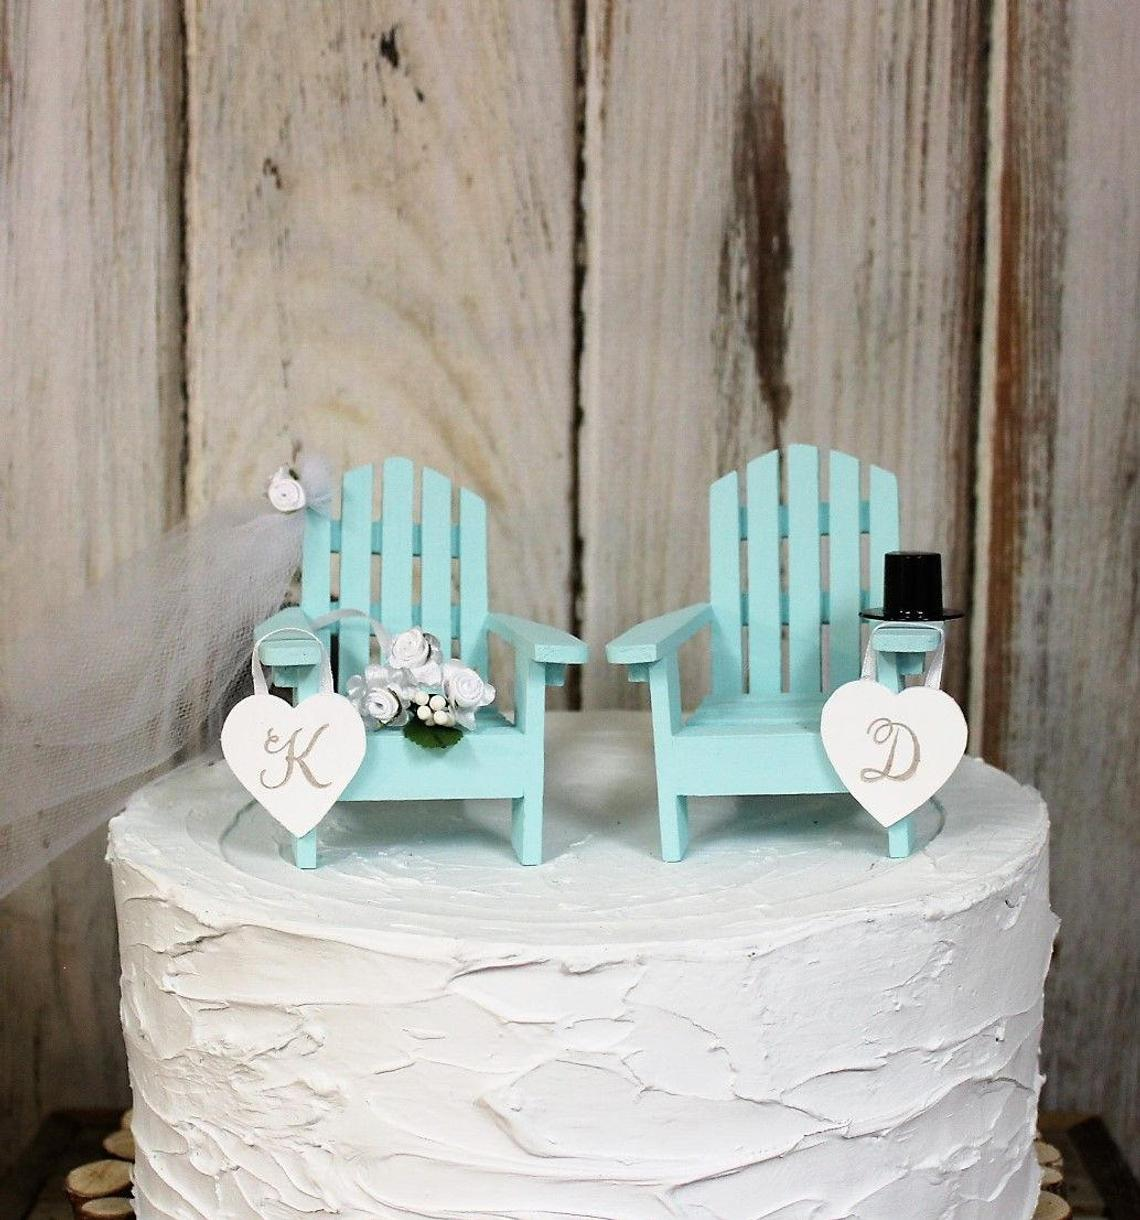 Custom Adirondack Chairs Wedding Cake Topper